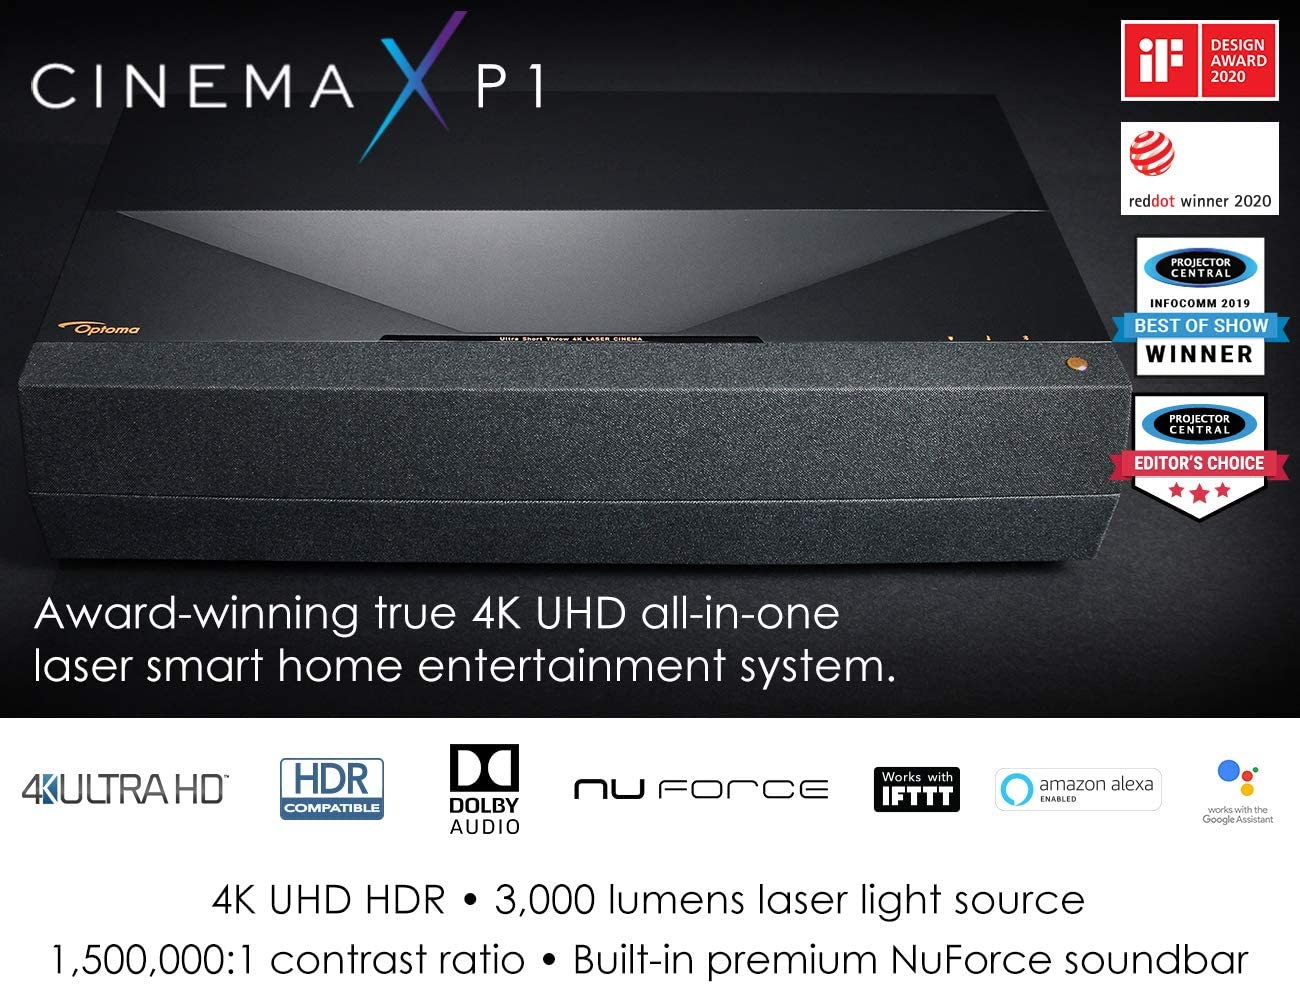 Optoma CinemaX P1 4K UHD Laser TV Home Theater Projector Bright 3000 Lumens Ultra Short Throw Integrated NuForce Soundbar Stream Netflix and Prime Video Works with Alexa and Google, Black